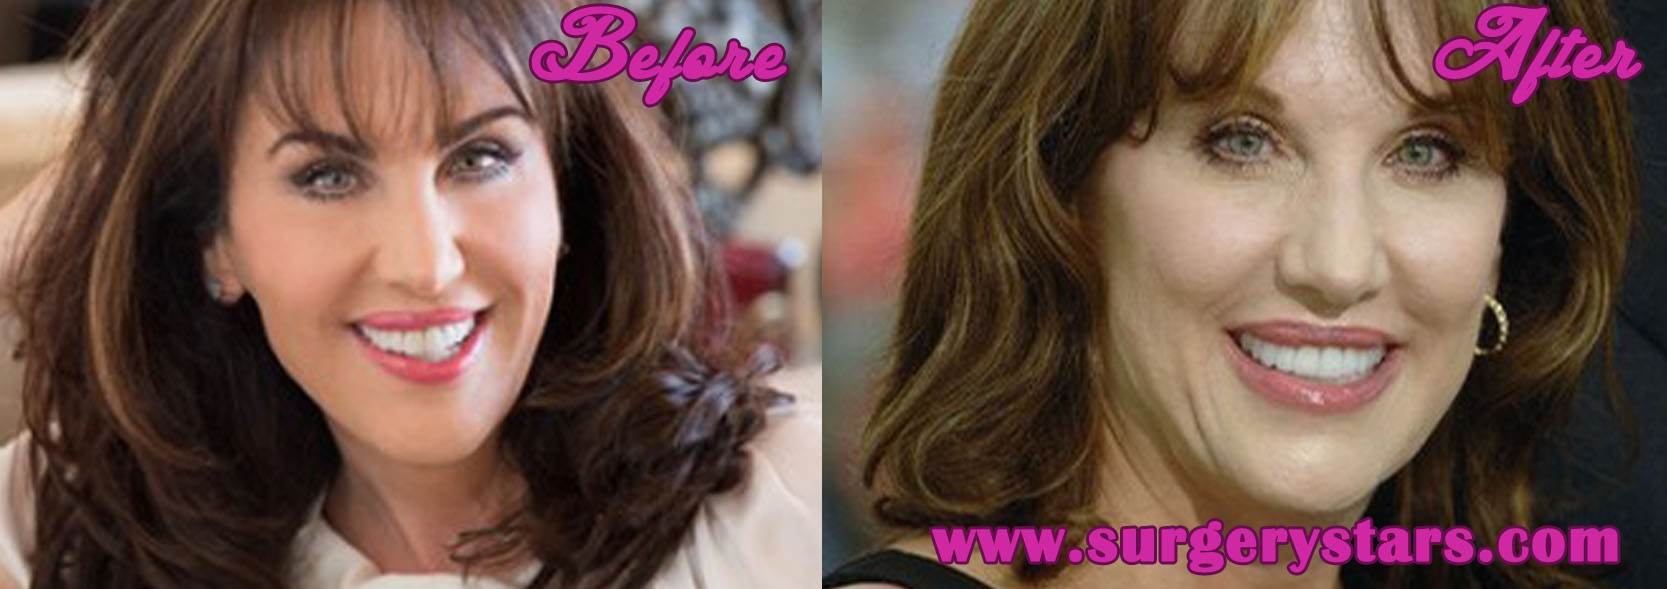 Robin jo jameson robin mcgraw plastic surgery before and after